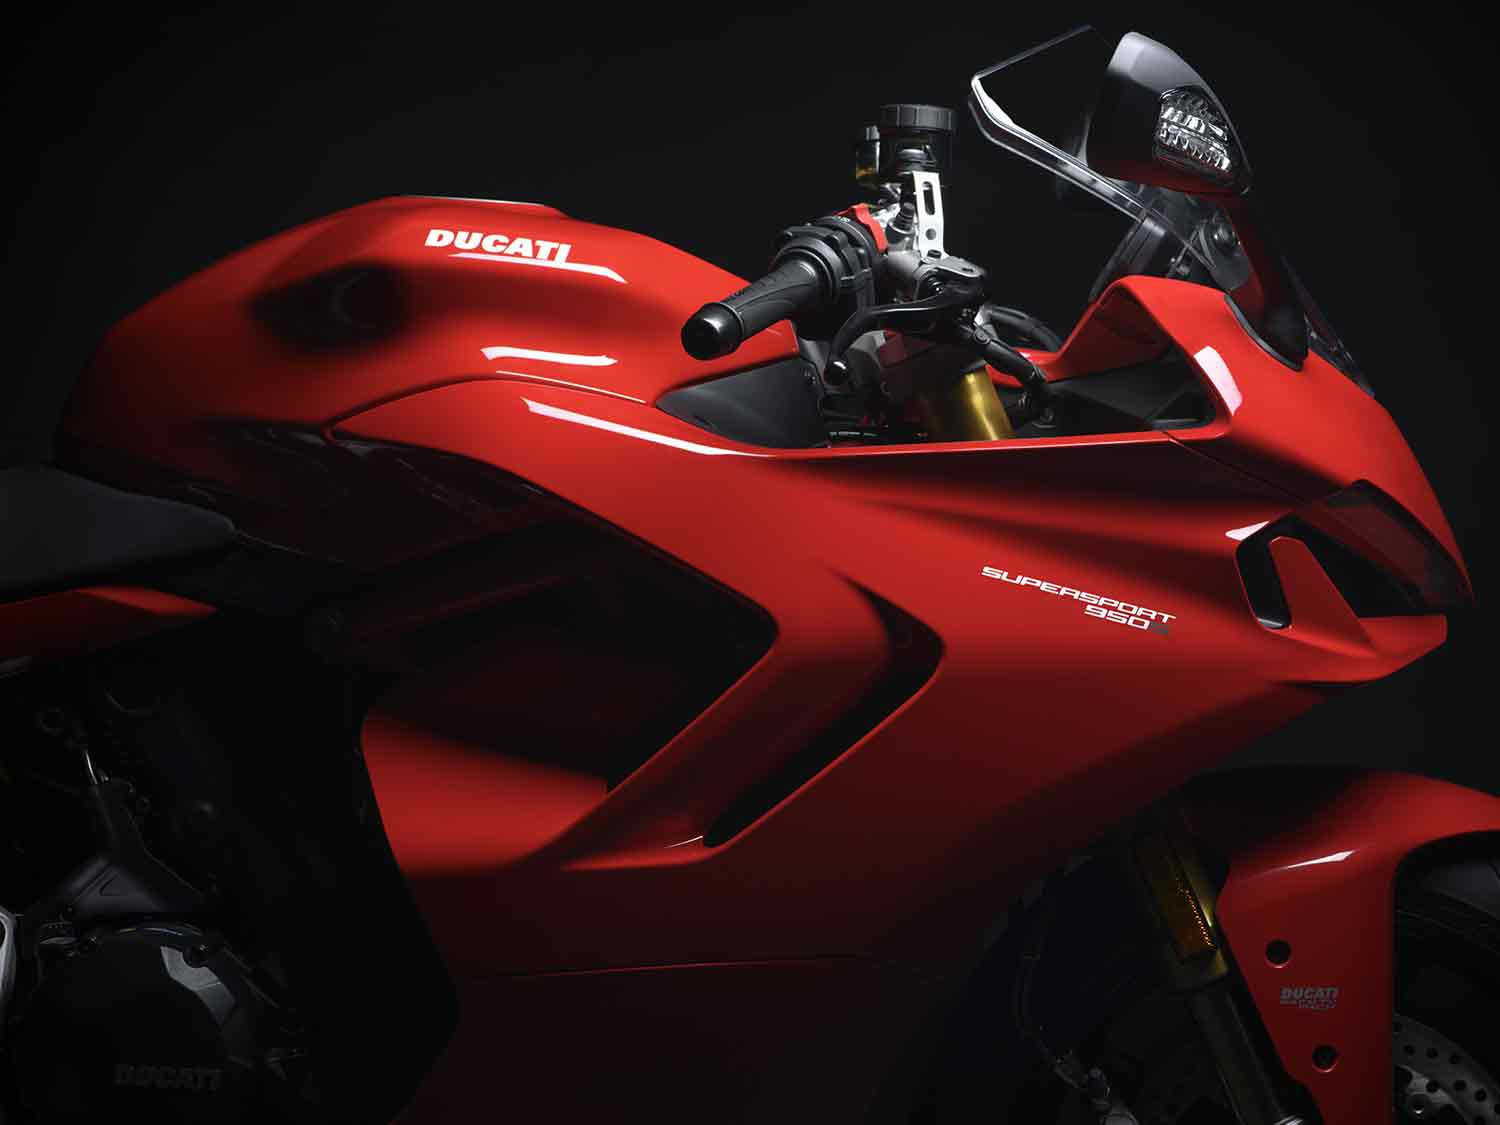 The most obvious change for next year is the sinister daytime running light that looks like it was pulled straight off a Panigale.